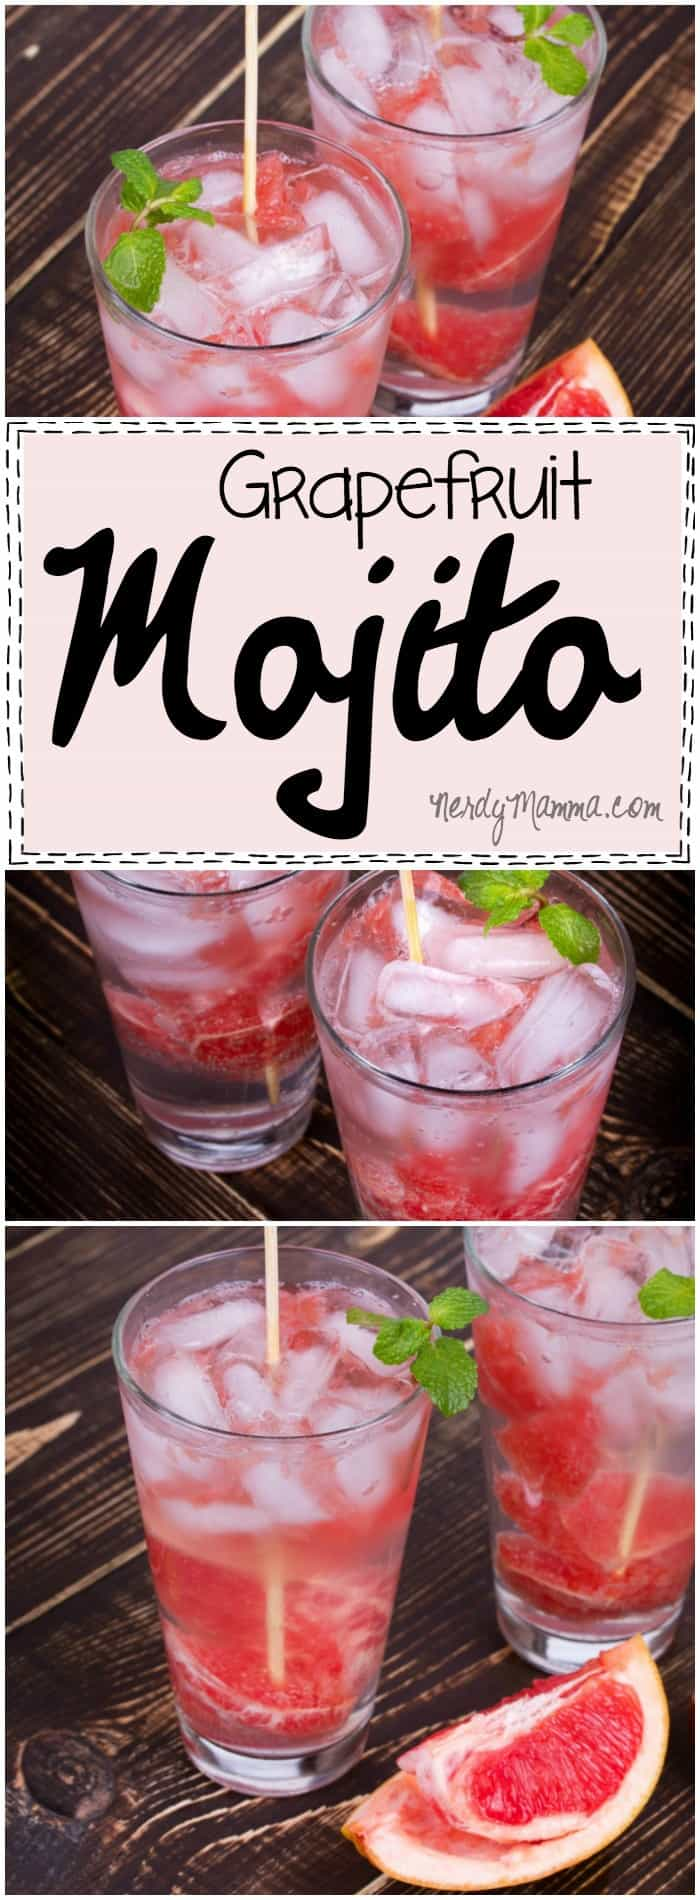 I love this recipe for grapefruit mojitos! I had no idea they were so easy!